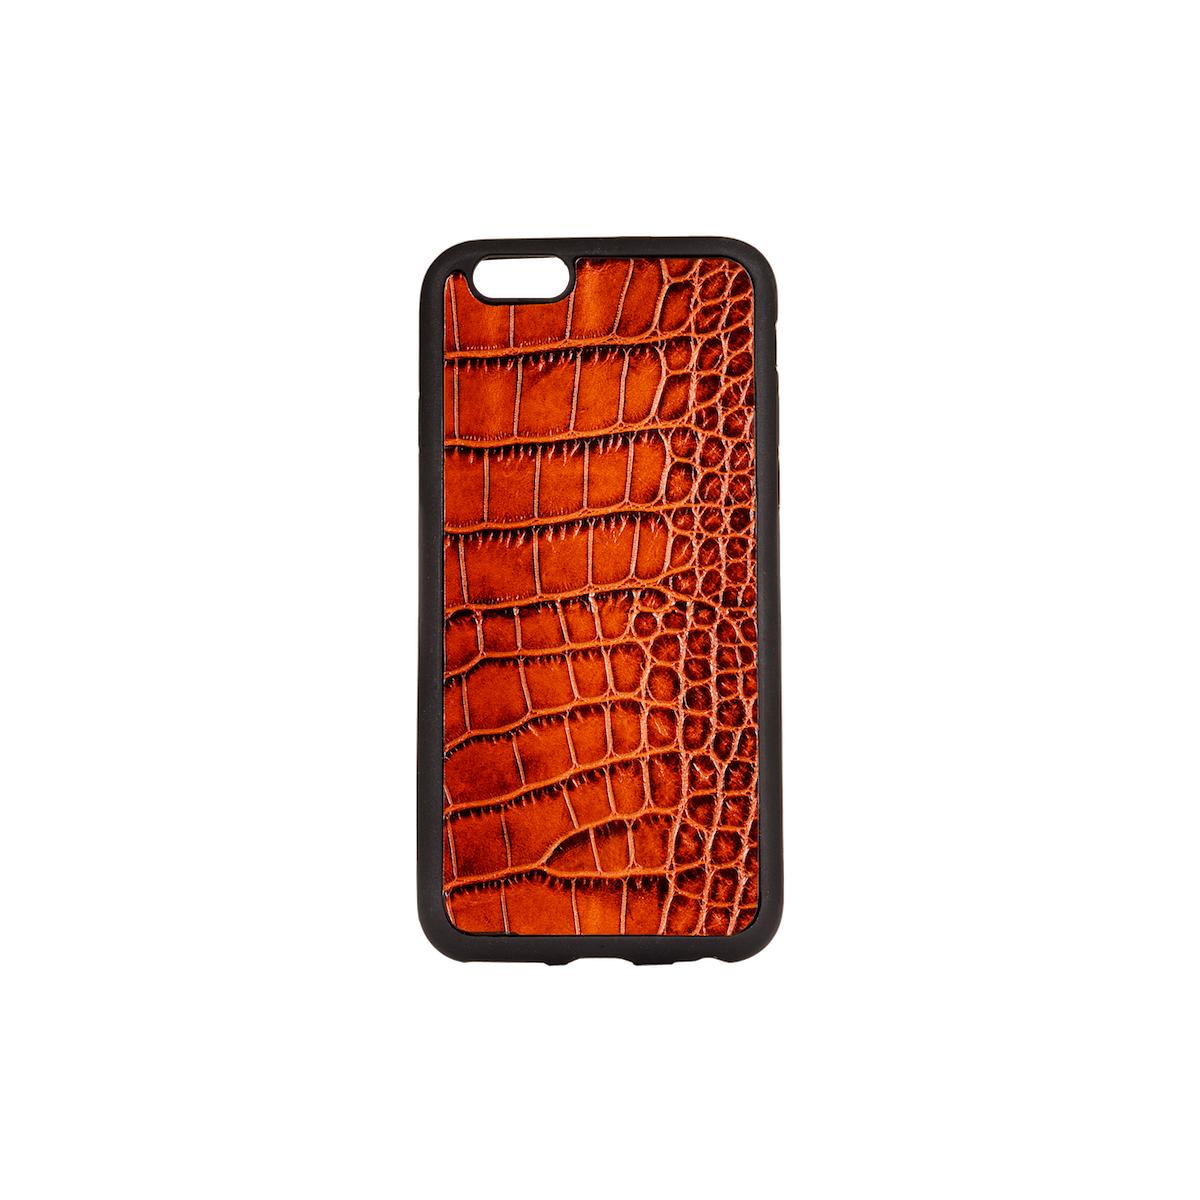 Iphone 6 Case, Tan Croco Leather, MAISON JMK-VONMEL Luxe Gifts